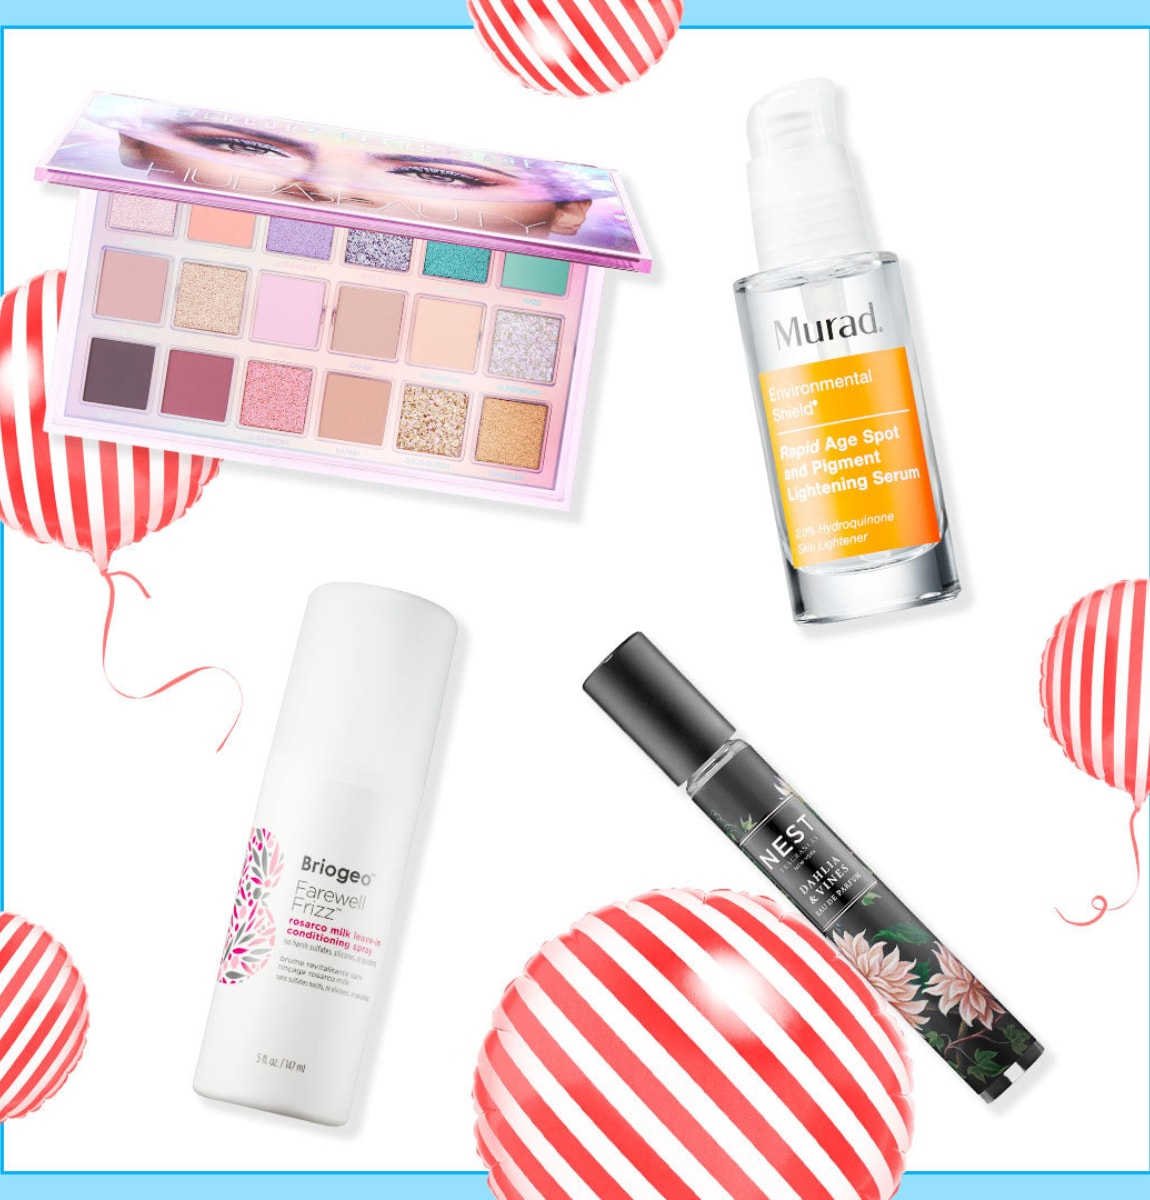 Sephora coupons and cash back